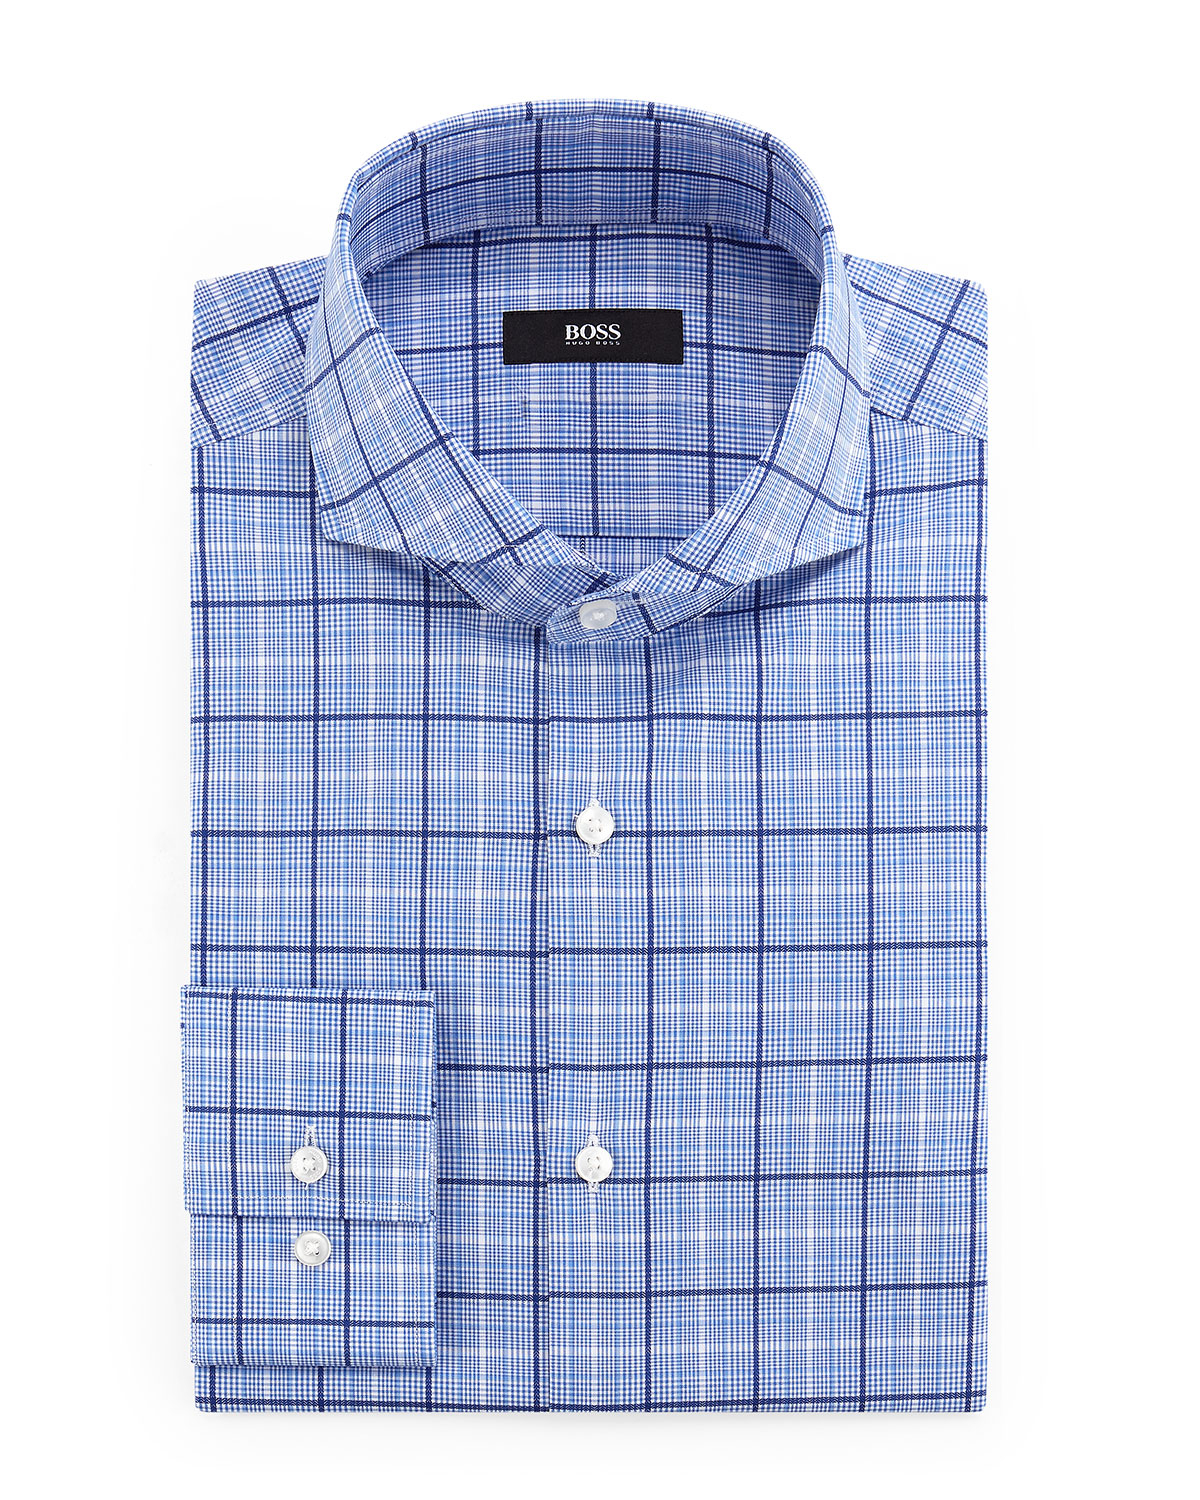 lyst boss dwayne slim fit plaid dress shirt in blue for men. Black Bedroom Furniture Sets. Home Design Ideas